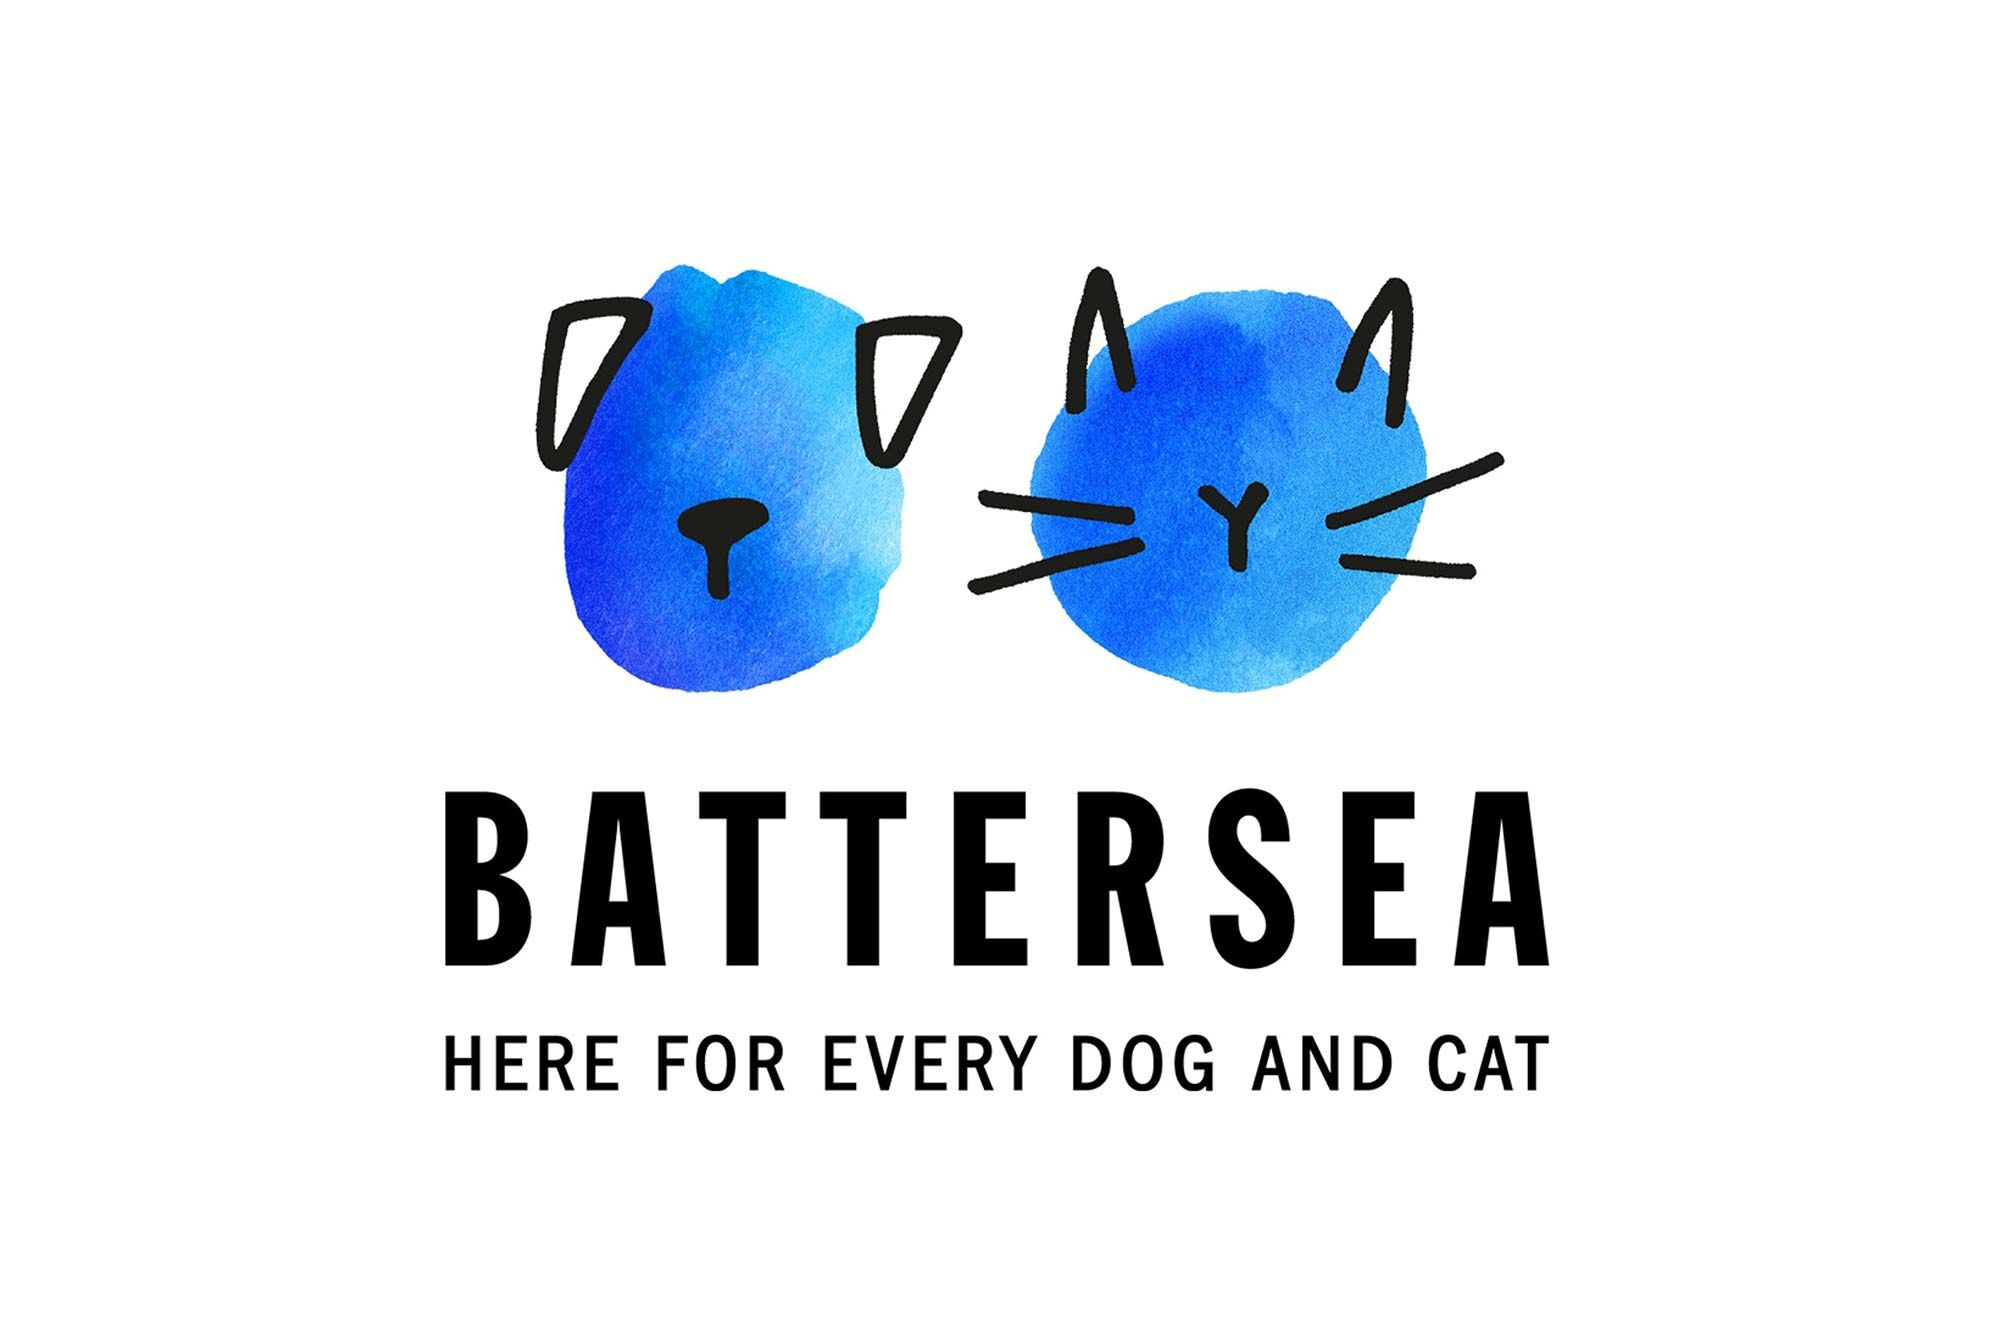 Pentagram Rebrands Battersea Dogs Cats Home Pet Branding Animal Rescue Center Identity